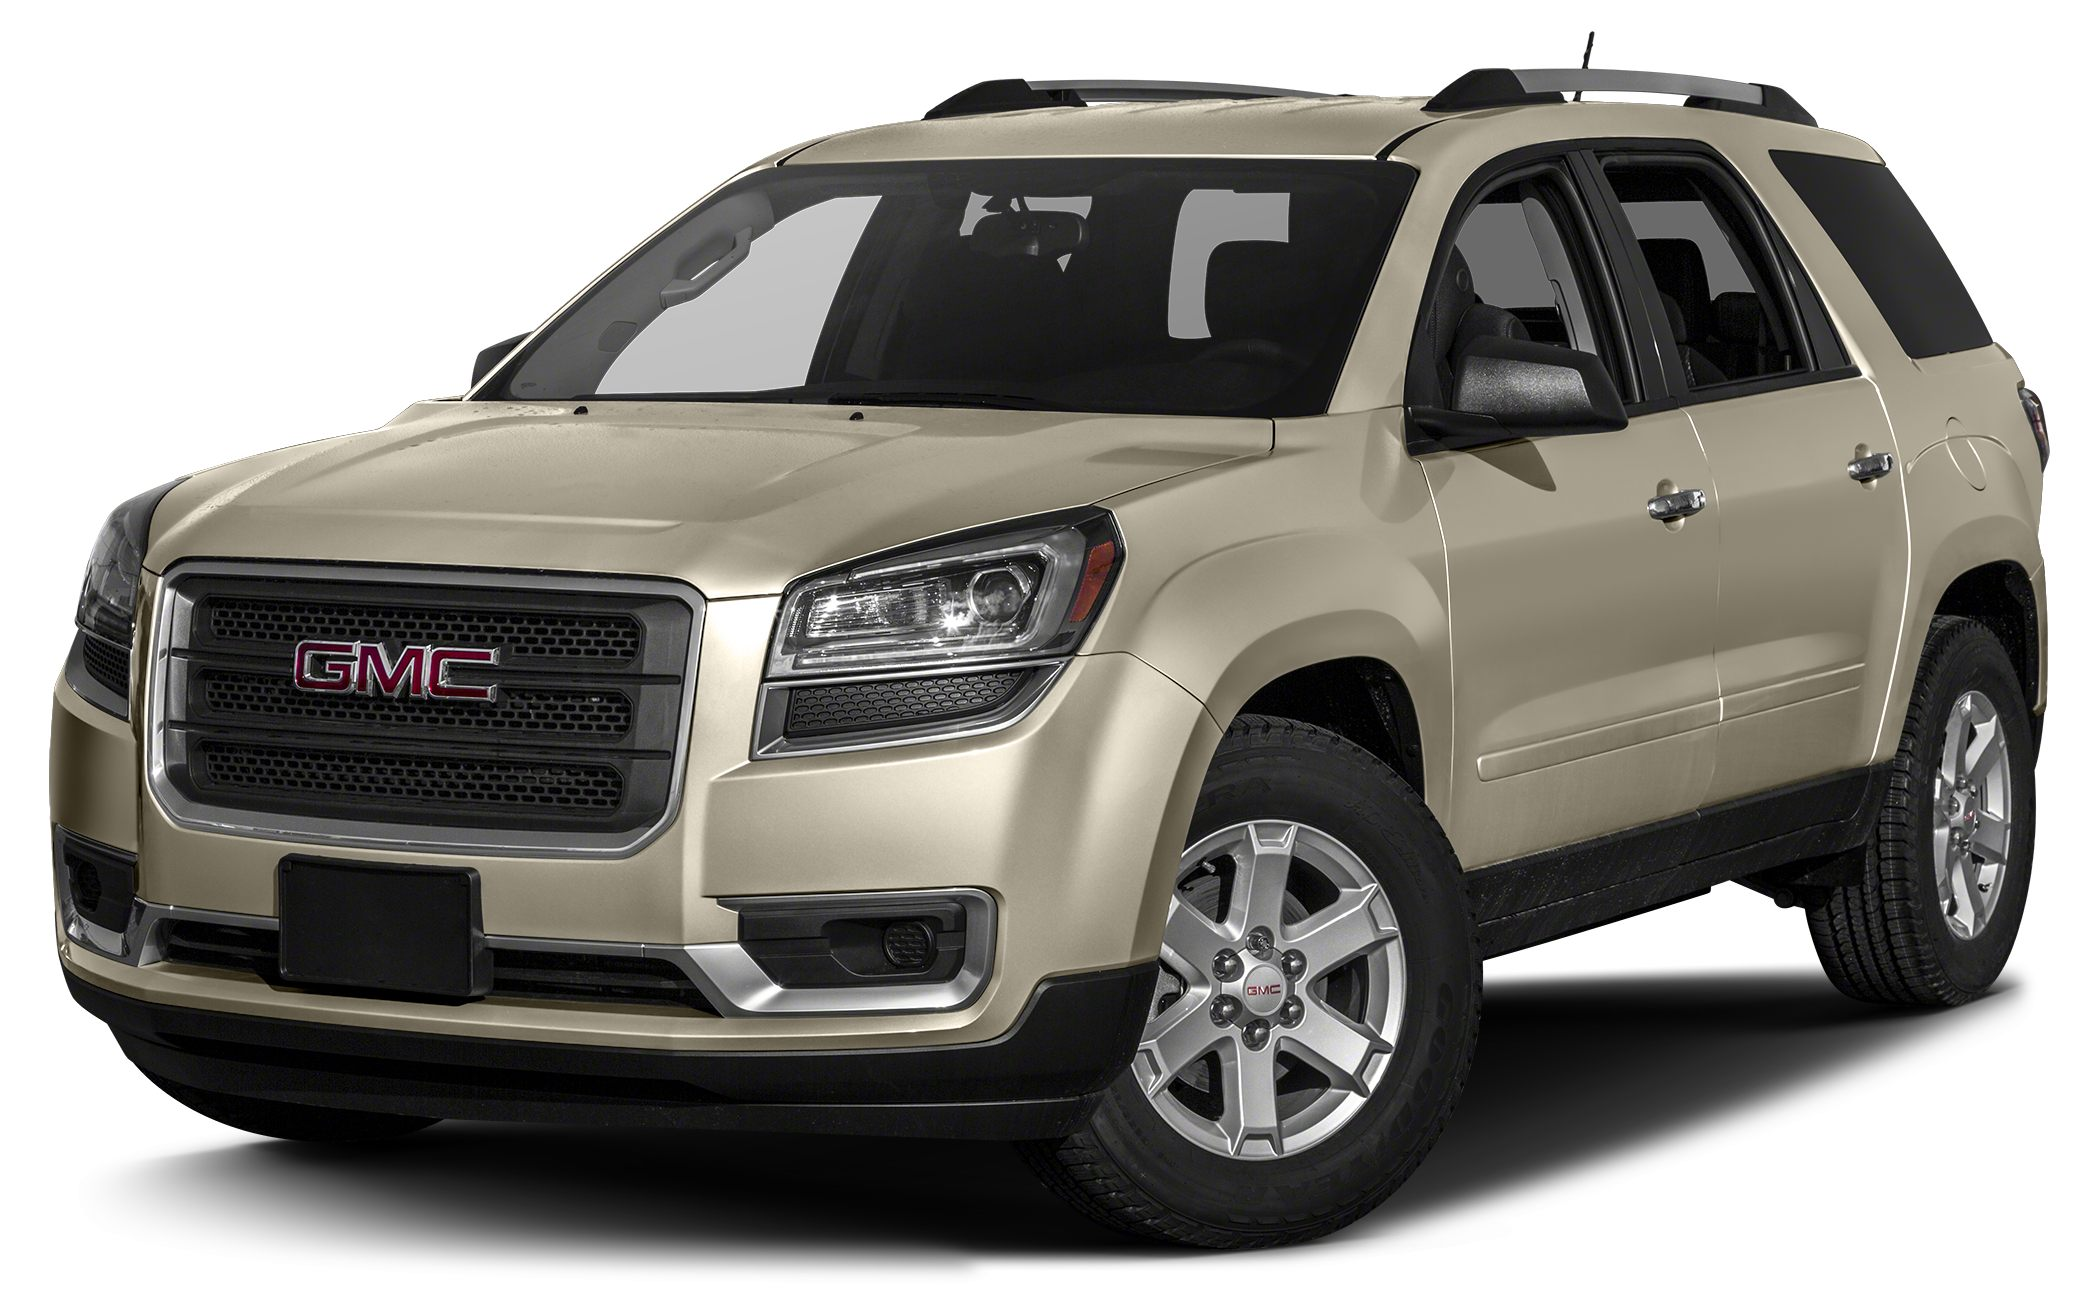 2014 GMC Acadia SLE-2 Miles 48646Color Tan Stock 20141 VIN 1GKKVPKD3EJ220936